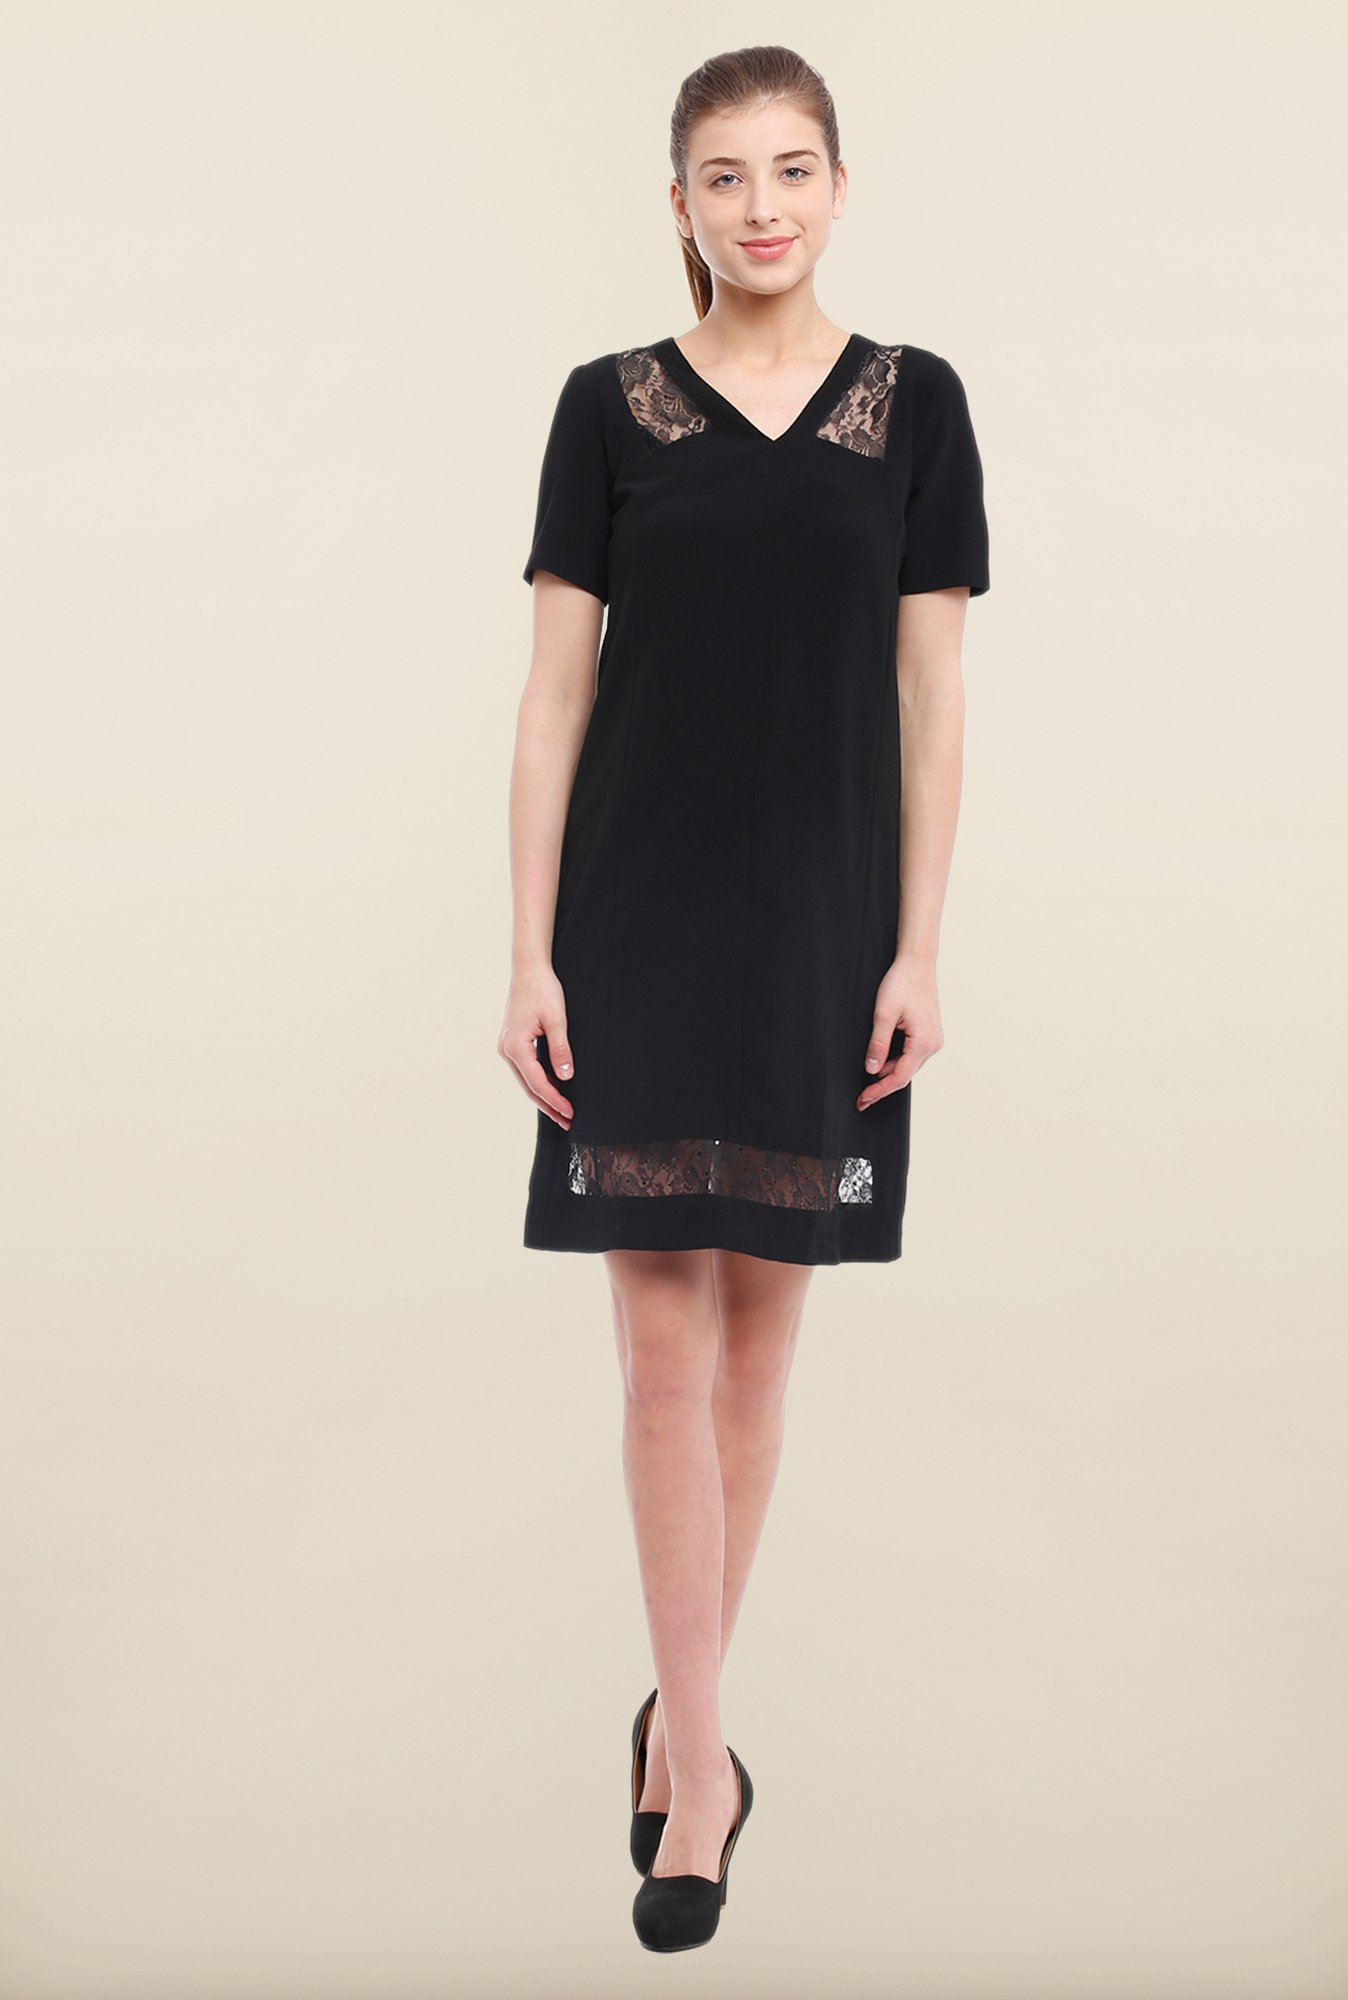 Avirate Black Solid Short Sleeves Shift Dress